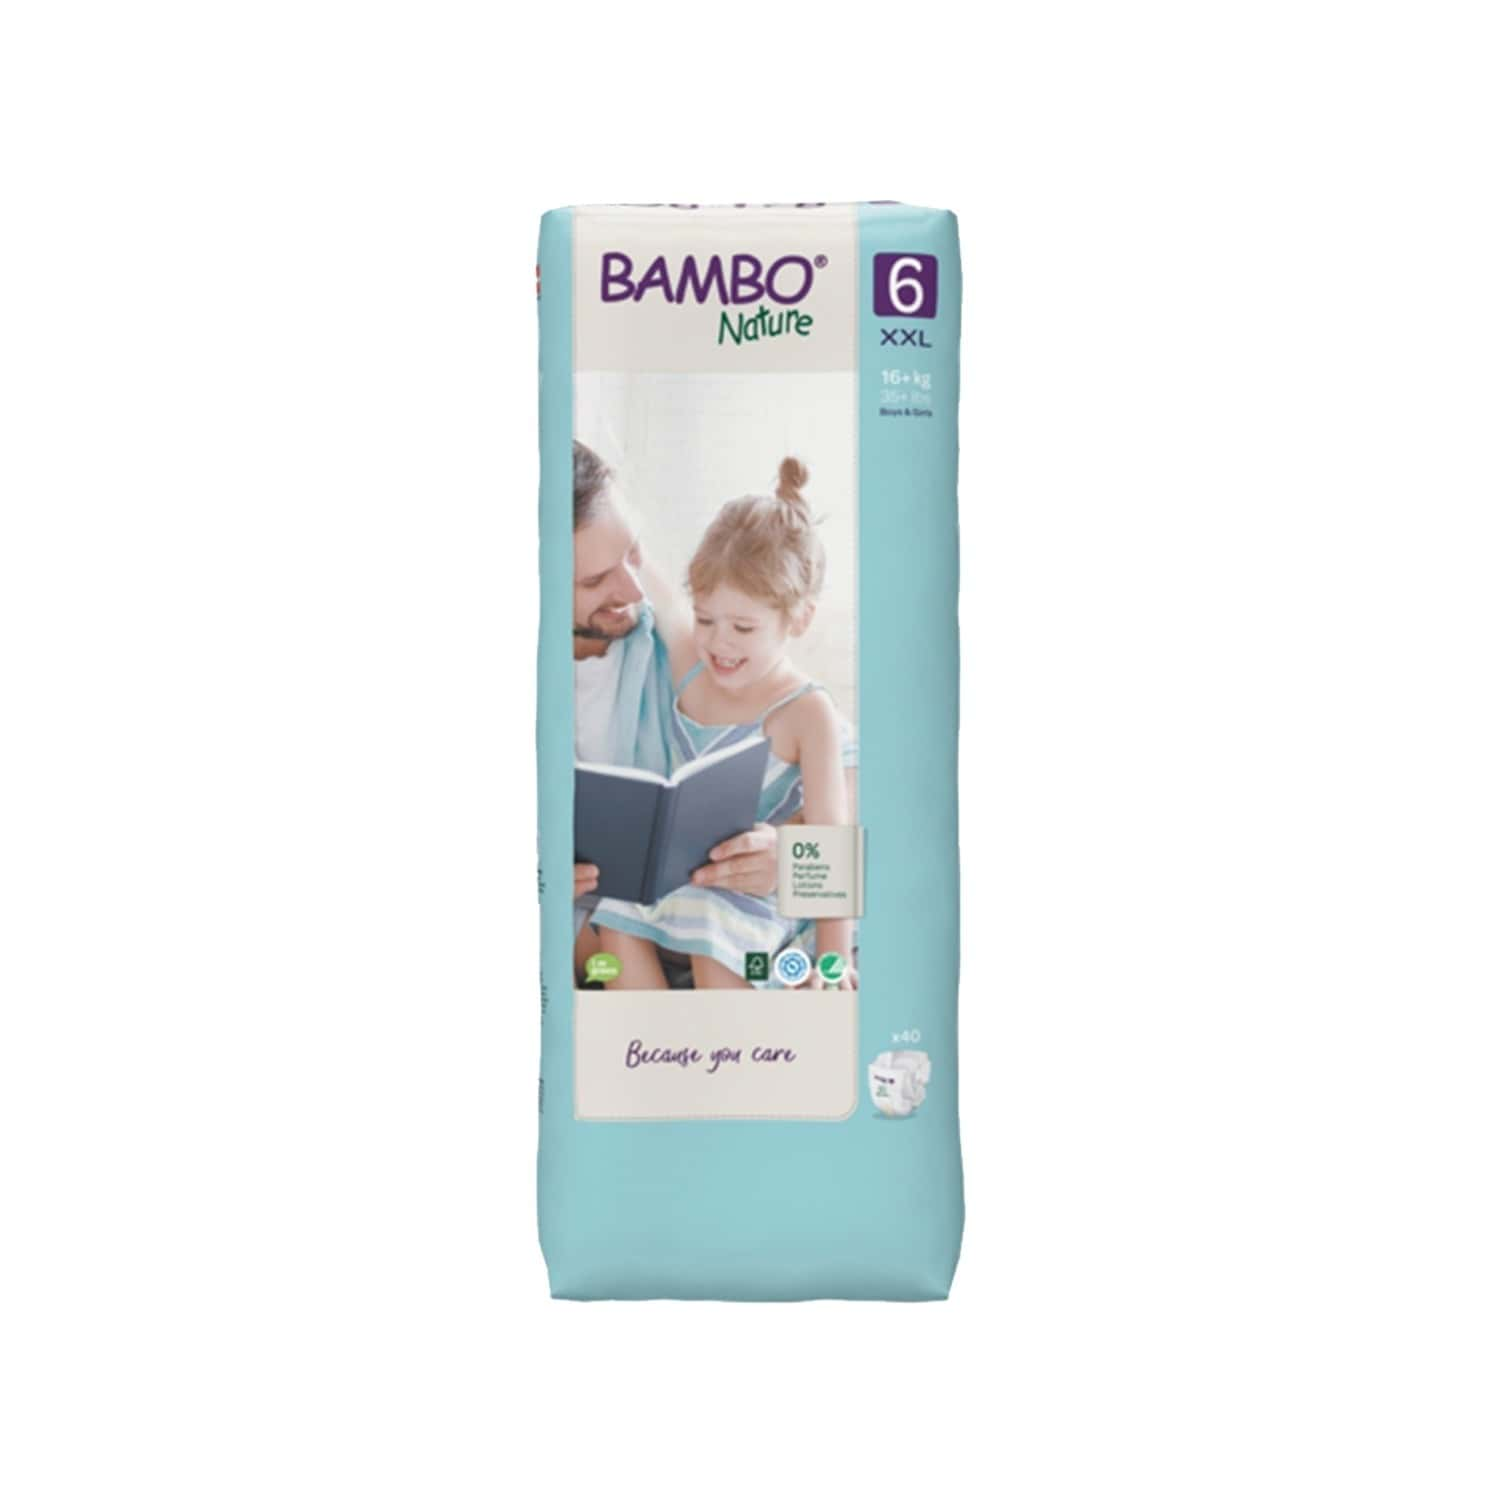 Bambo Nature Xxl Size Diaper With Wetness Indicator - 40 Diapers